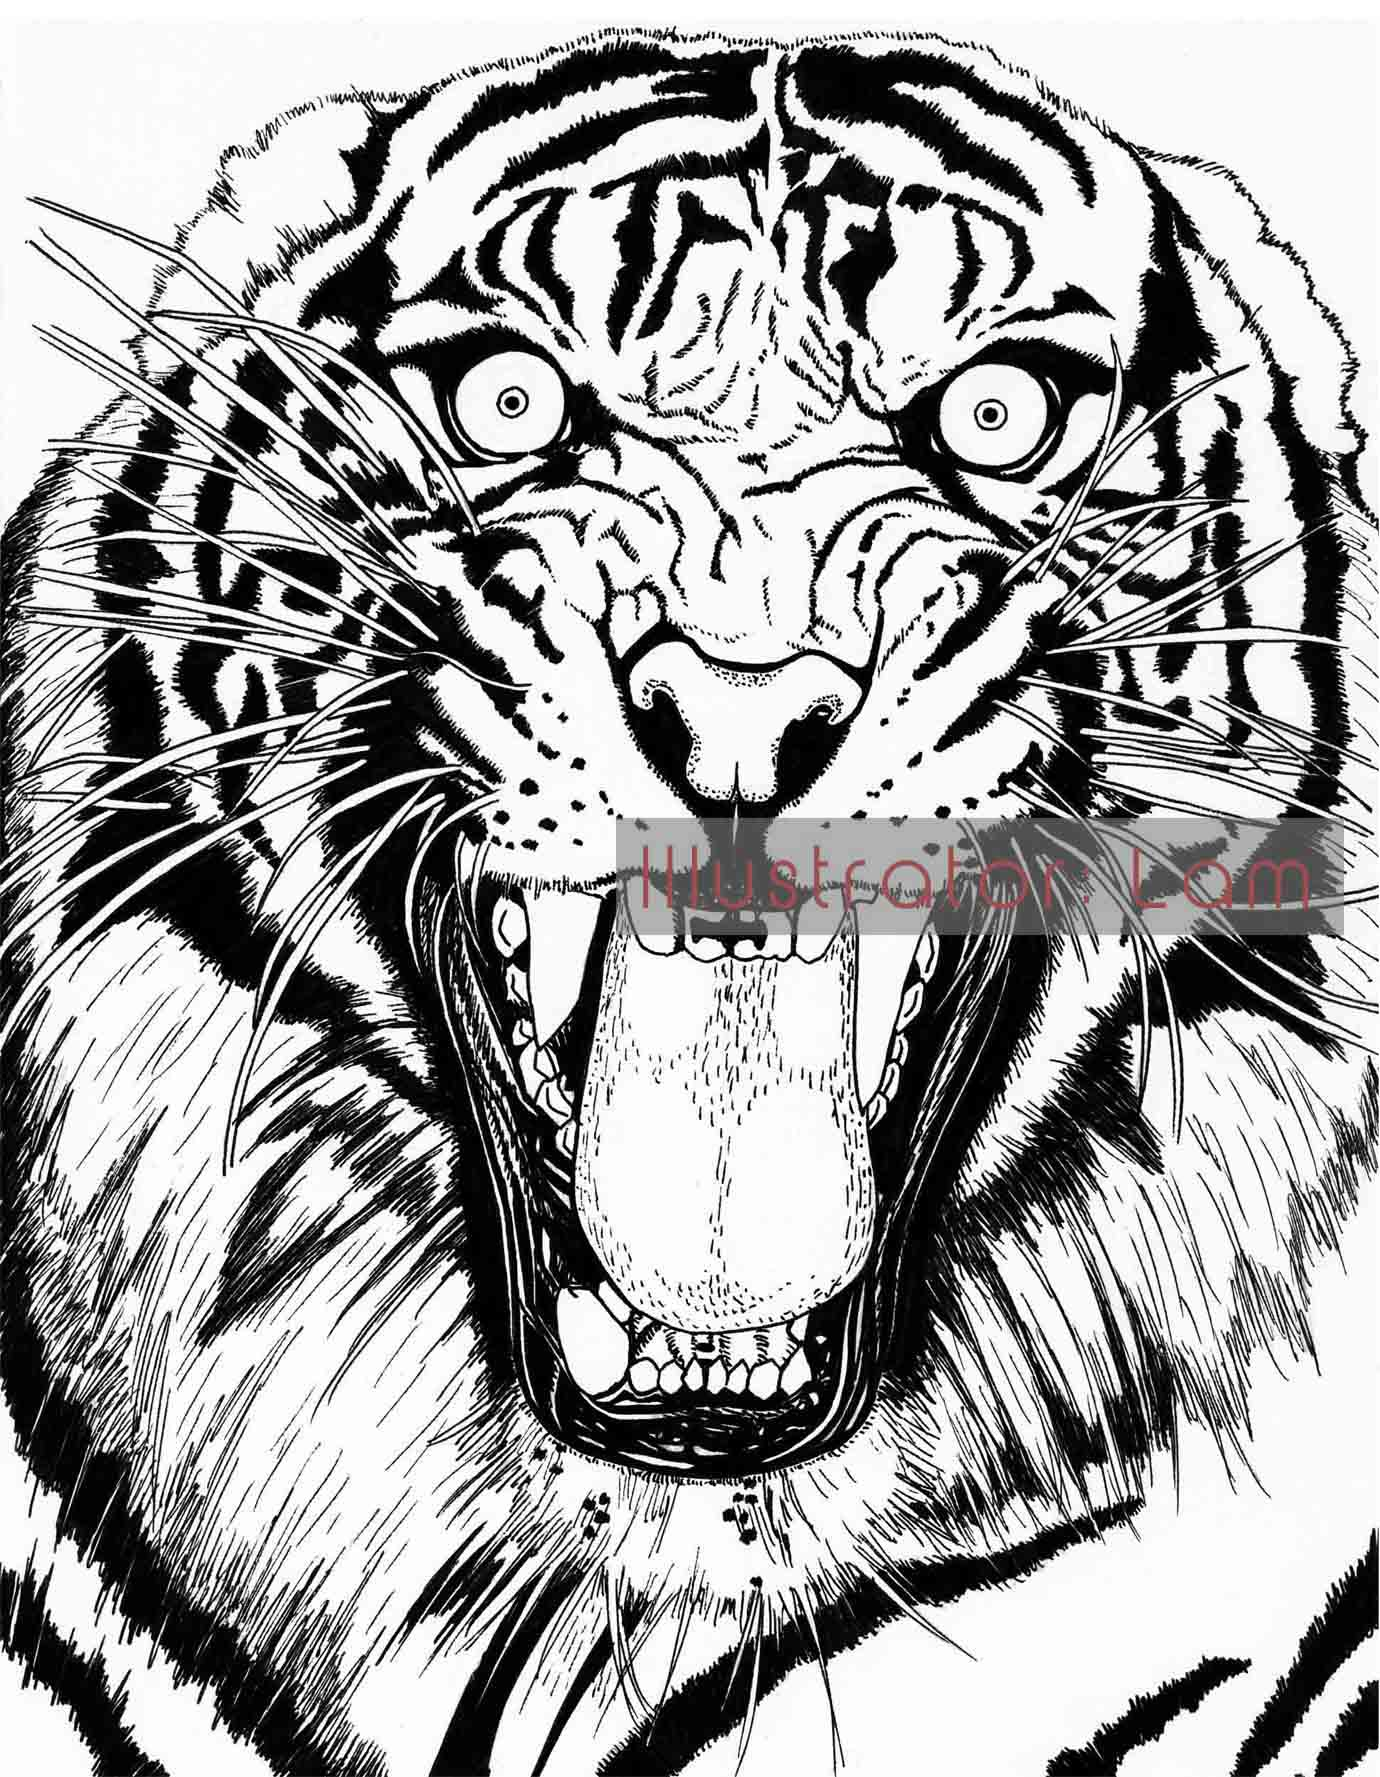 Line Drawing Of A Tiger S Face : Tiger face sketch